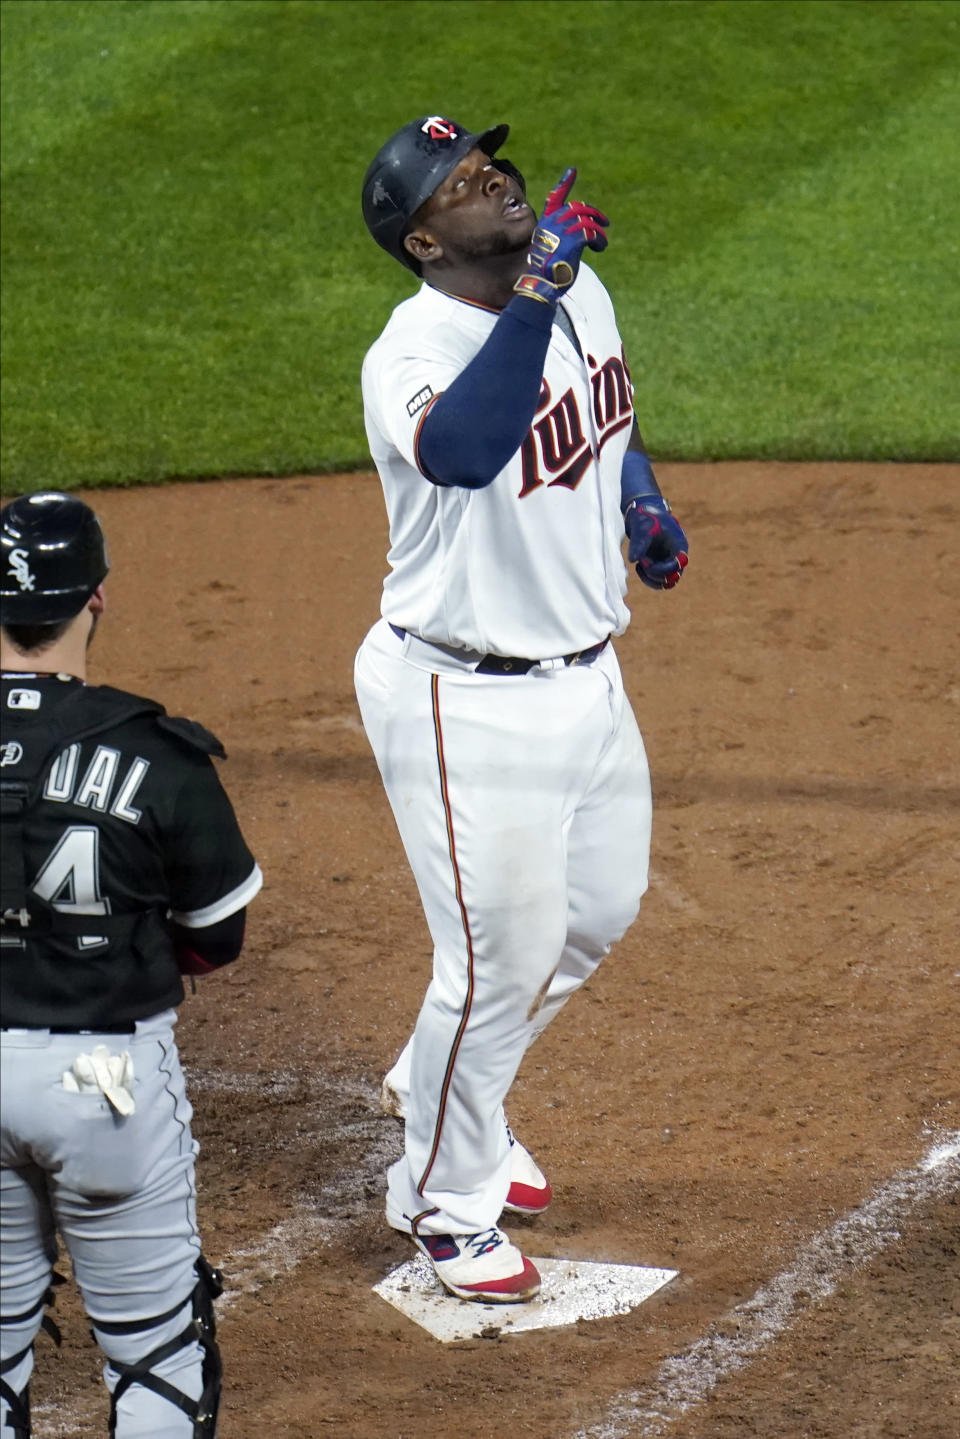 Minnesota Twins' Miguel Sano celebrates his second home run of the night off Chicago White Sox pitcher Lance Lynn, during the sixth inning of a baseball game Tuesday, May 18, 2021, in Minneapolis. (AP Photo/Jim Mone)